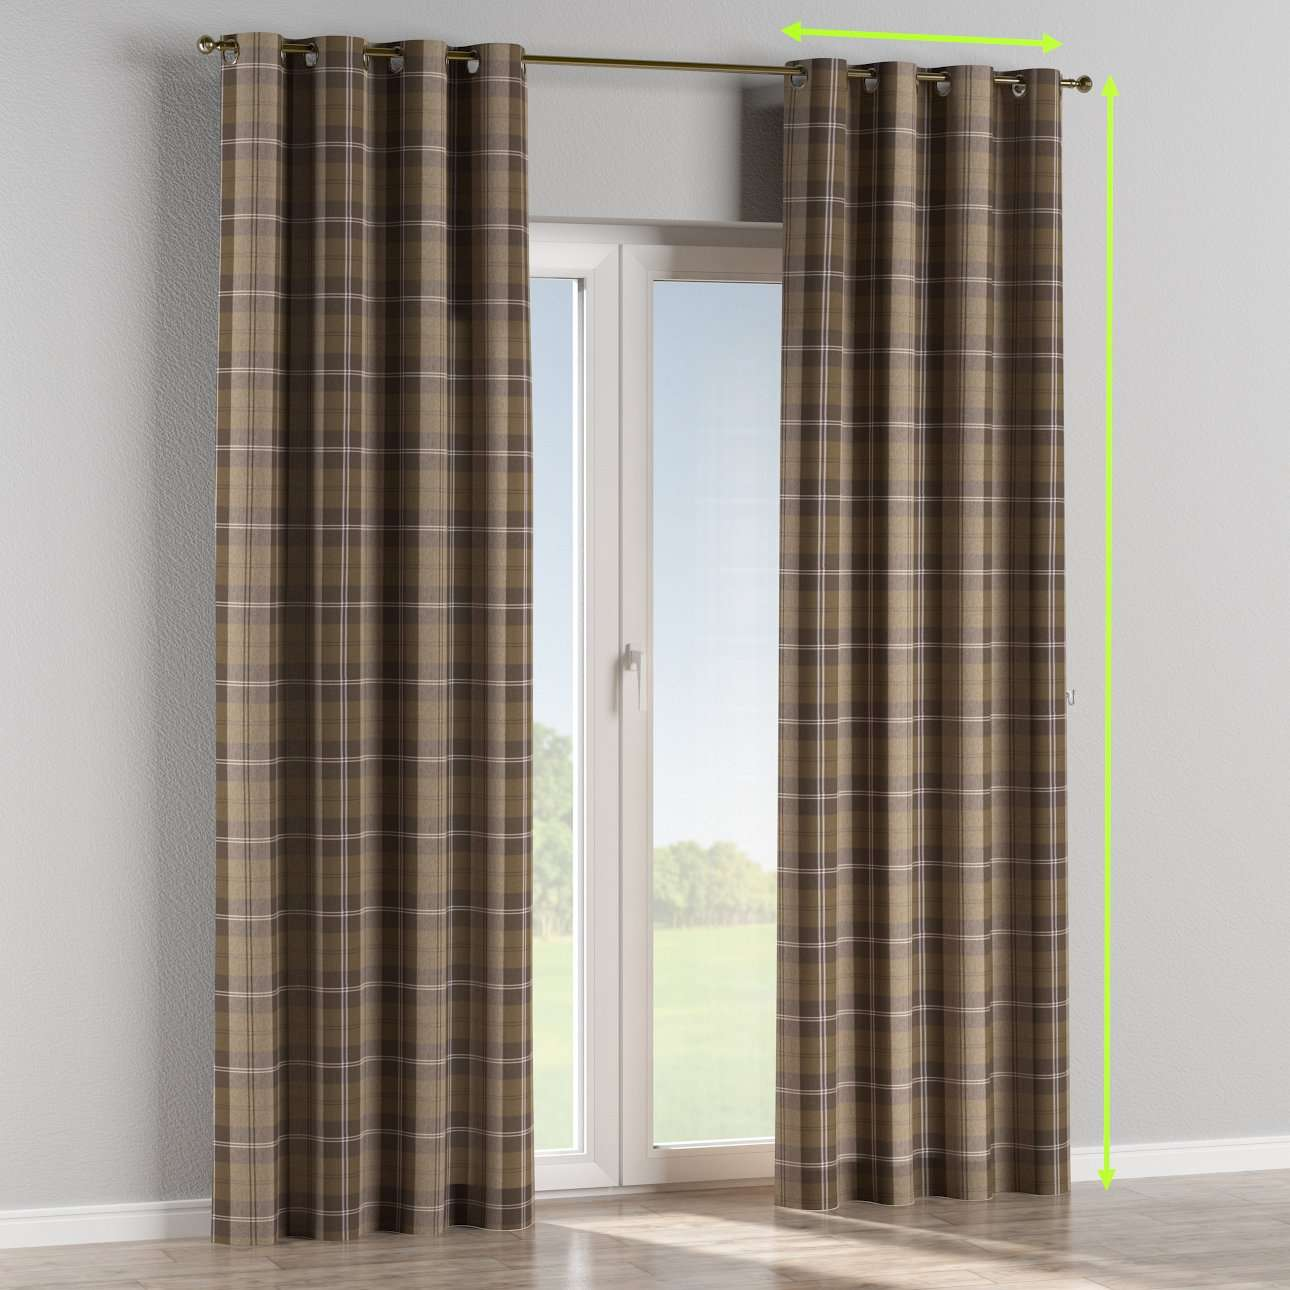 Eyelet lined curtains in collection Edinburgh, fabric: 115-76